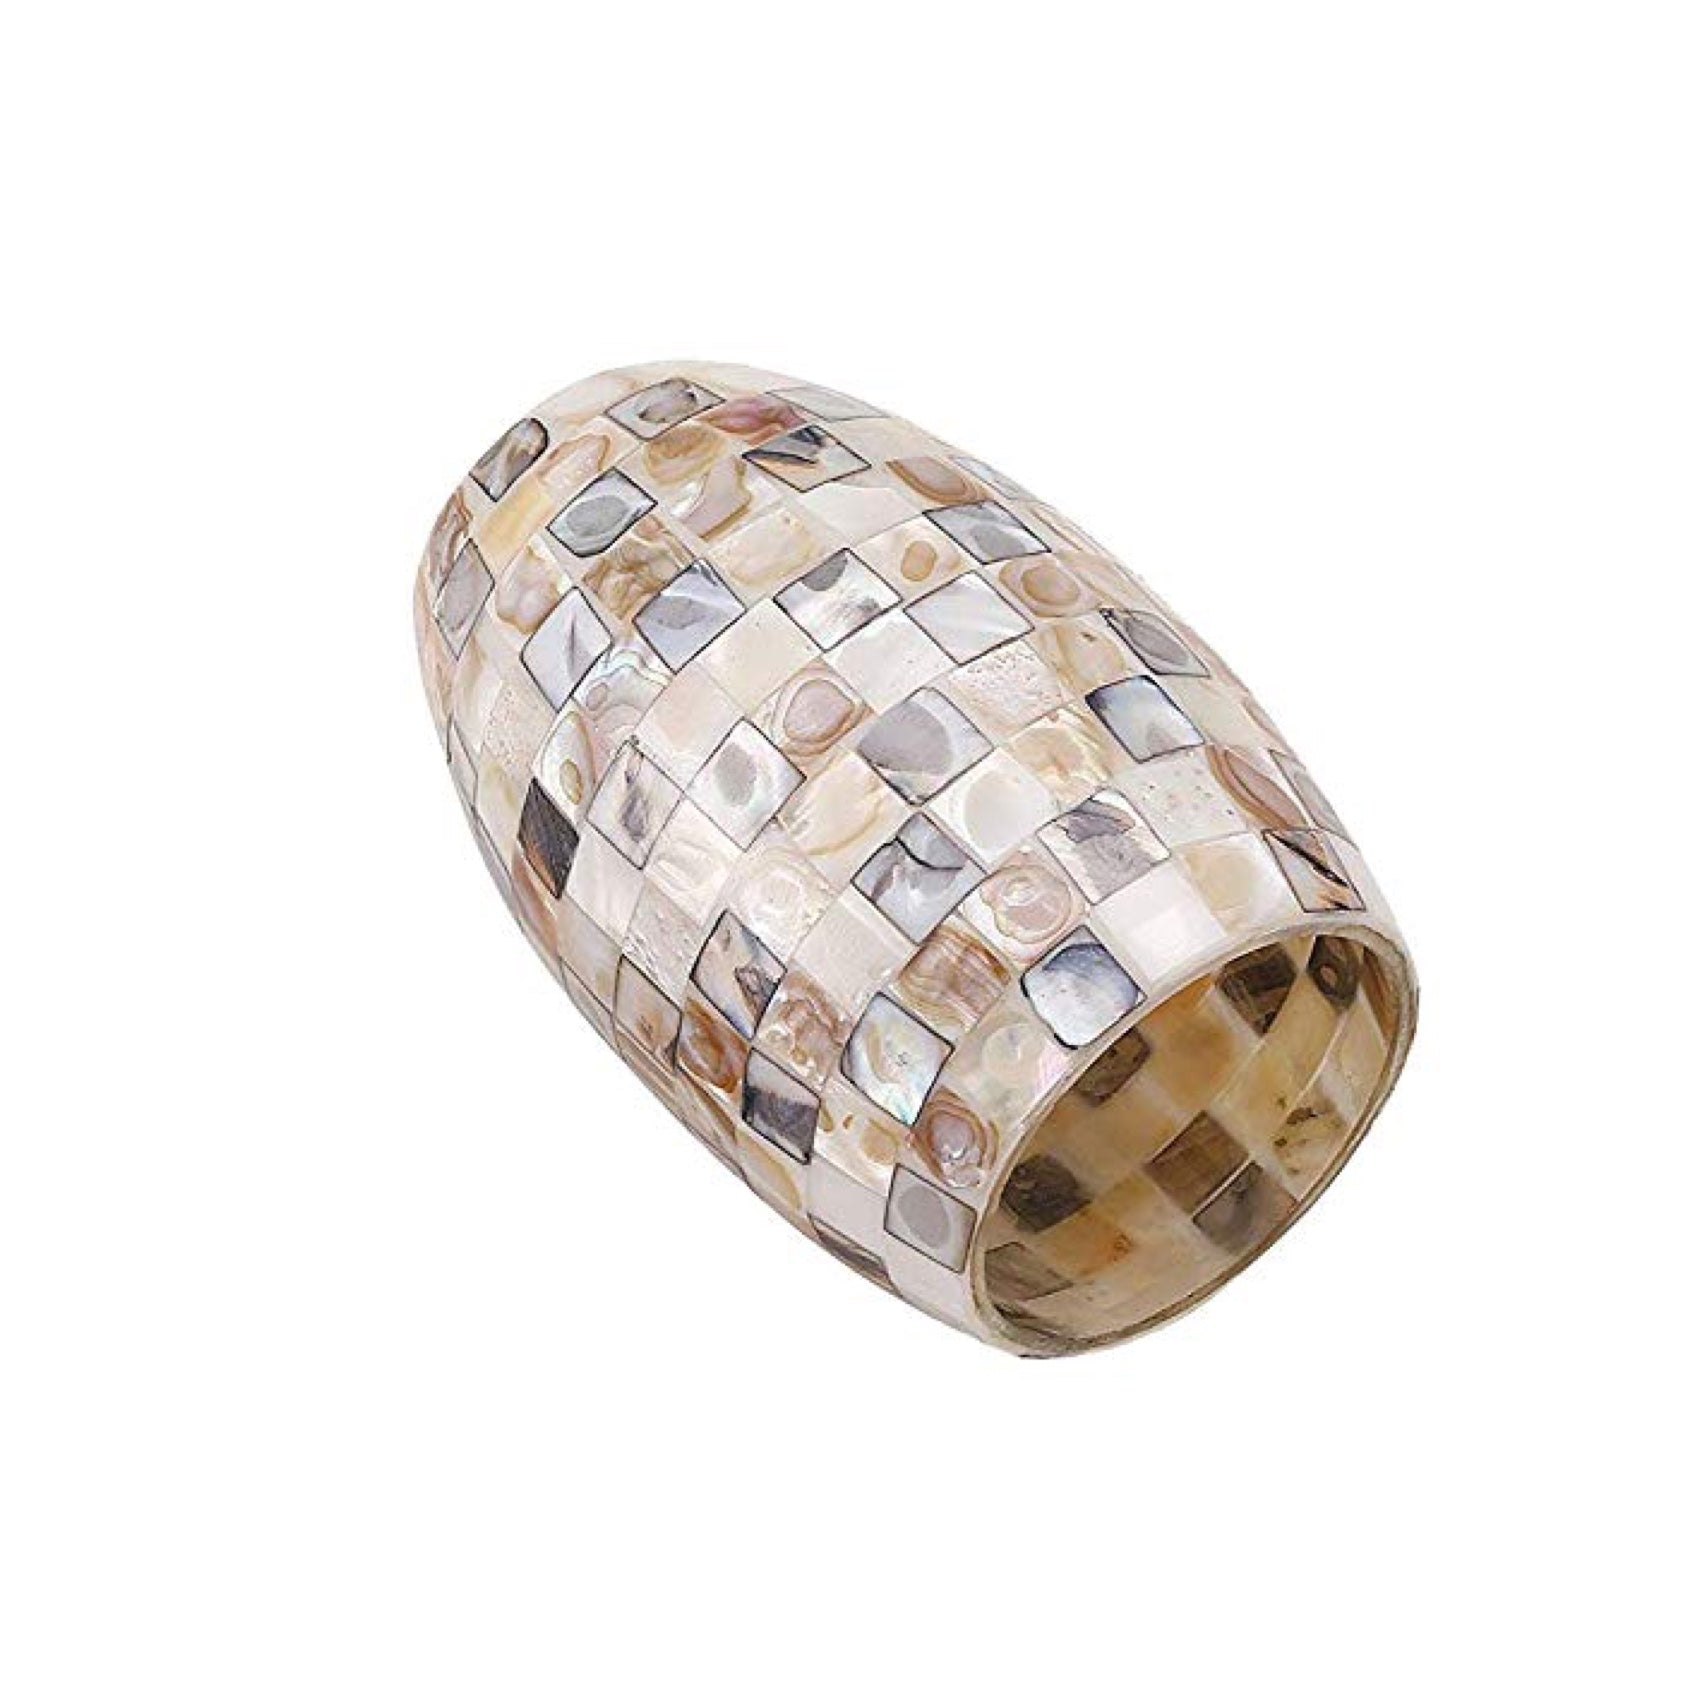 Ceiling Hanging Mini Pendant Light, 8W-A19 LED, Mosaic Glass, 2700K - 3 Pack